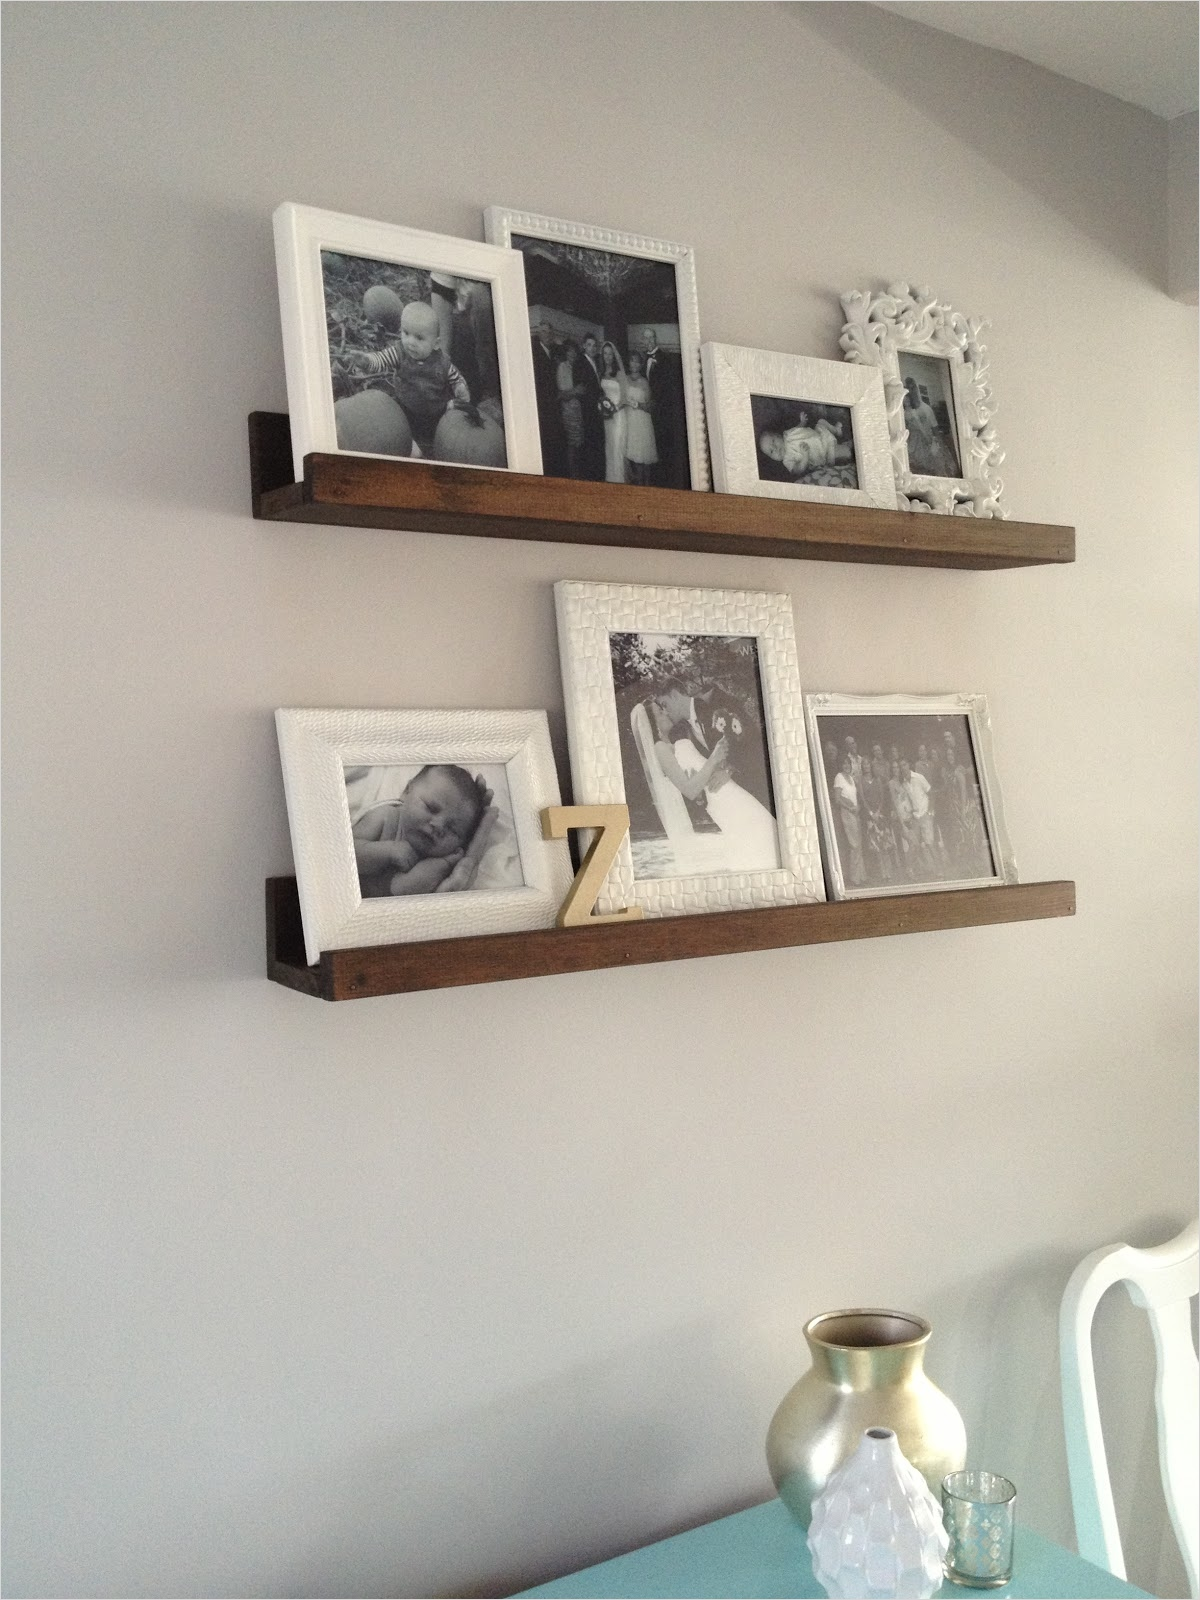 45 Creative Rustic Wall Mounted Bookshelves 24 Rustic Wall Mount Shelving Unit White Painted Wall for Frame Picture Storage with Metal Wall 7